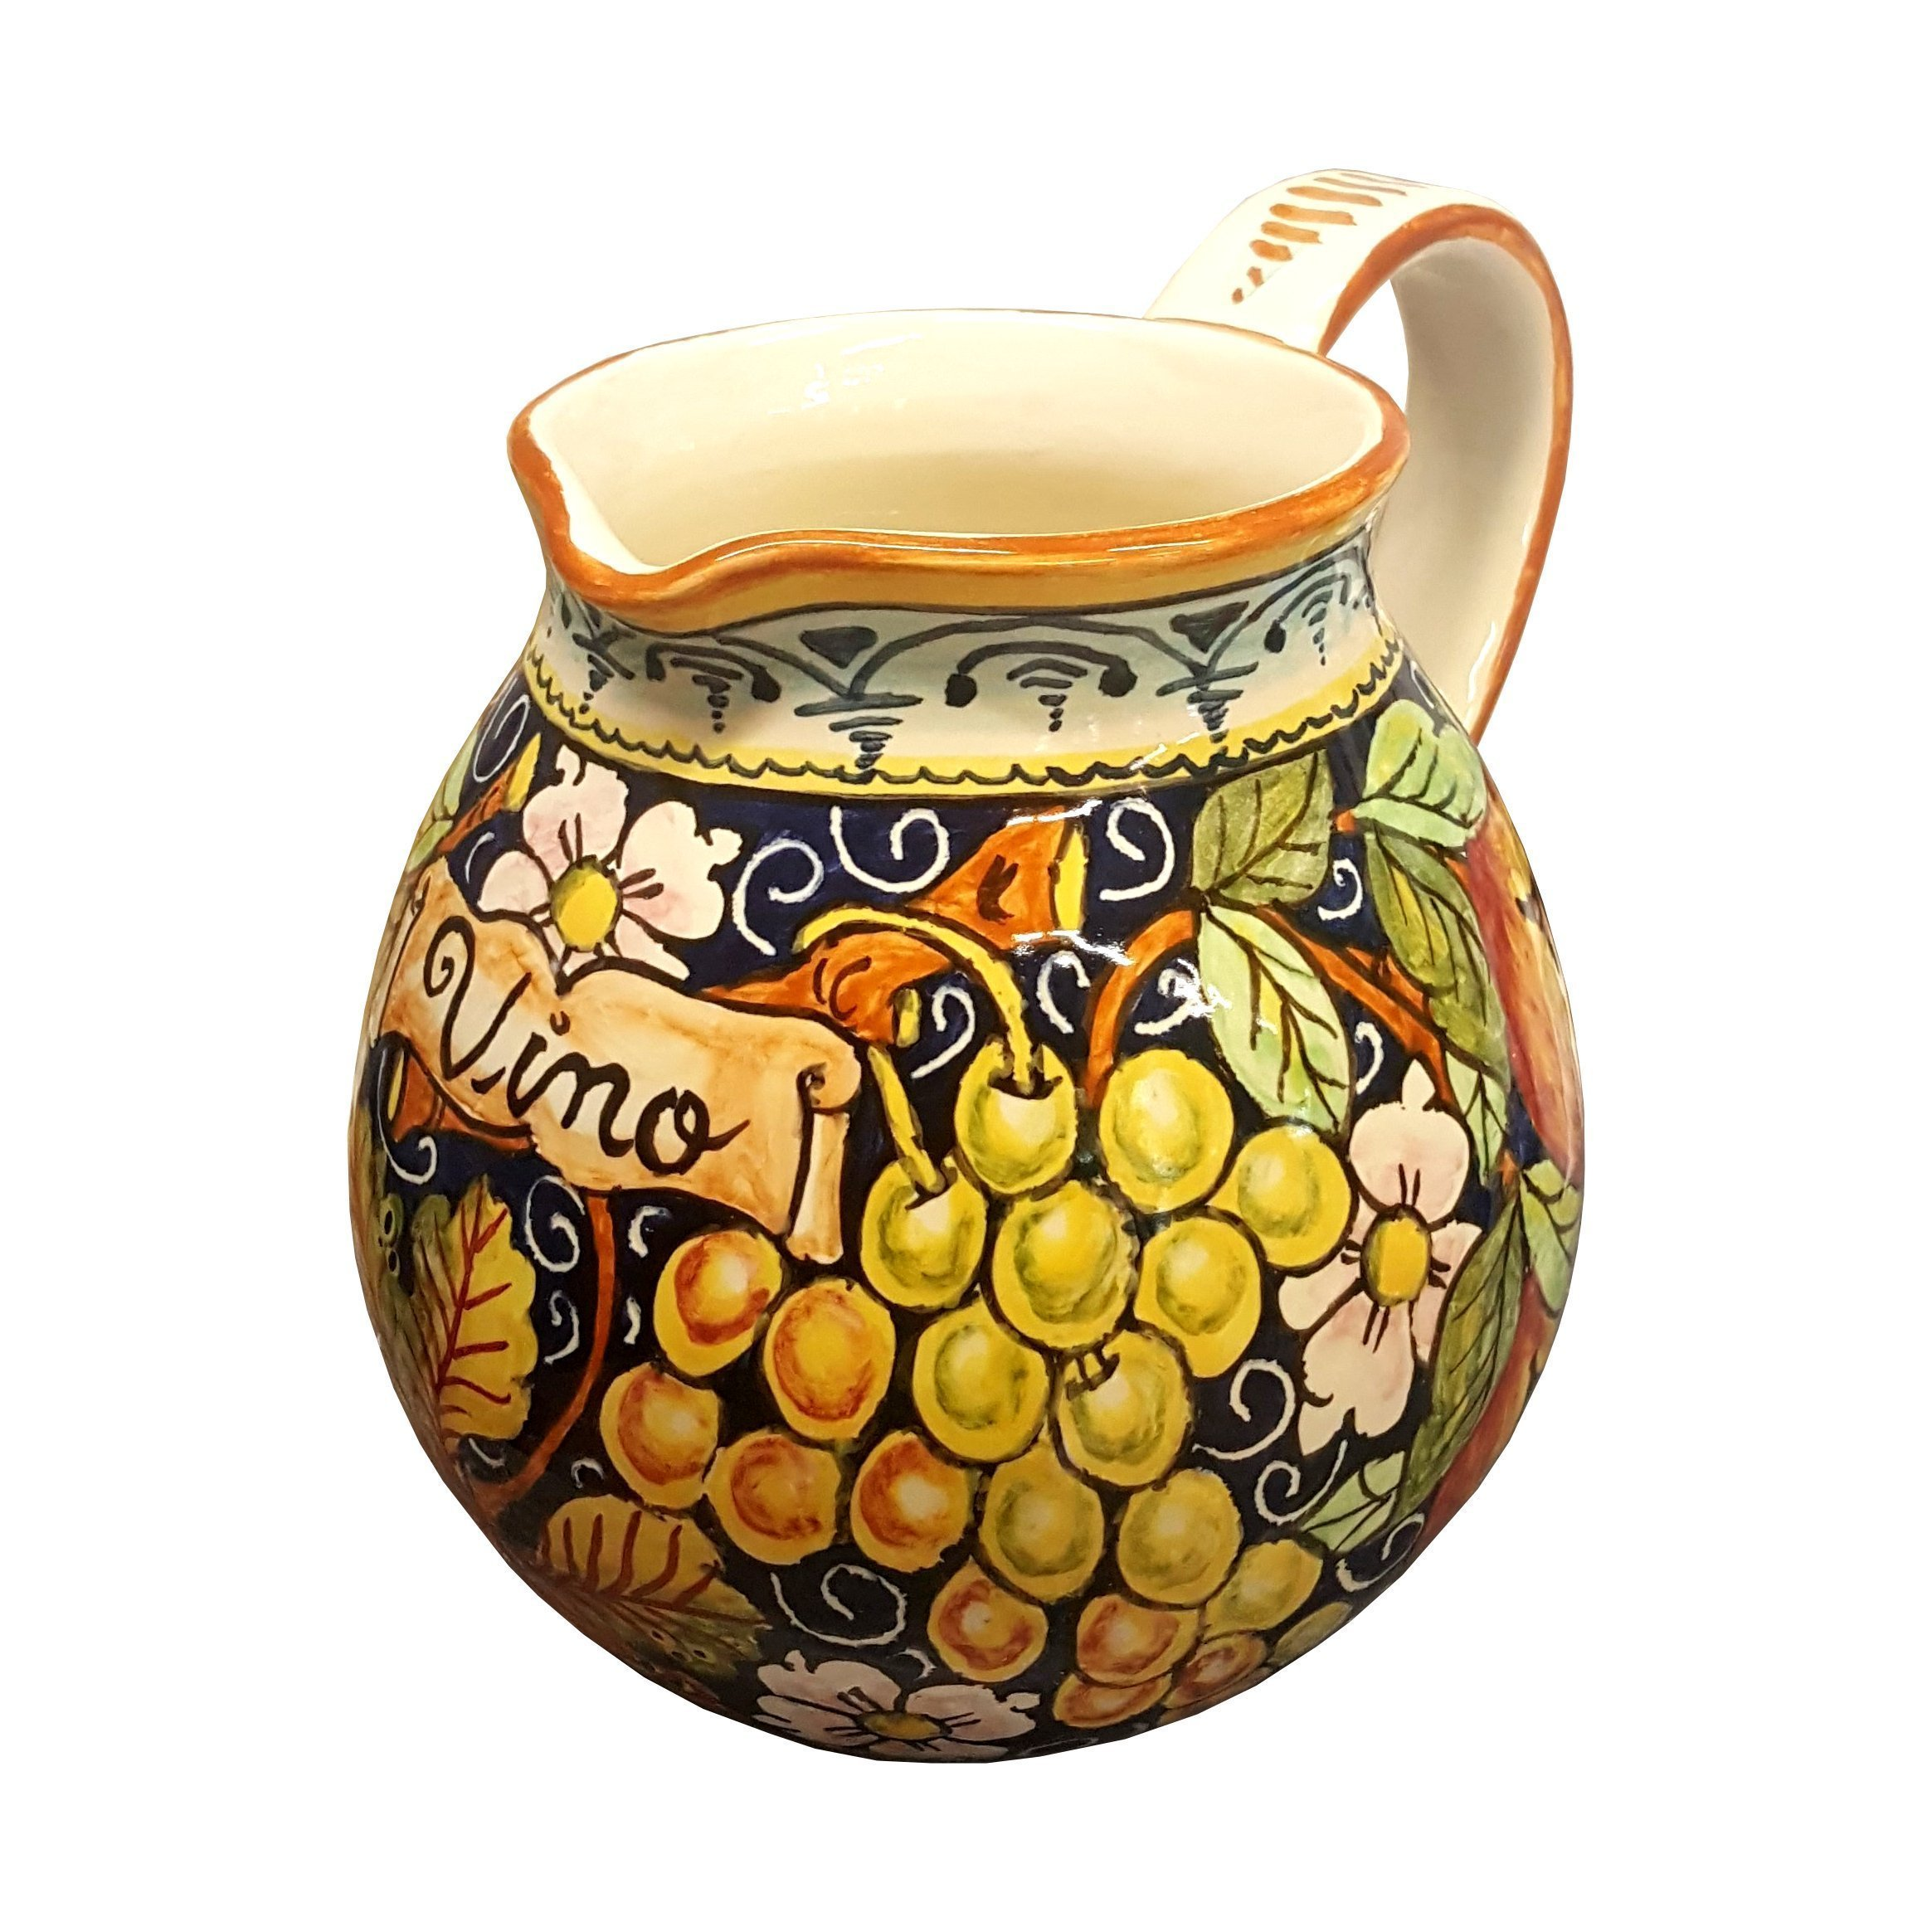 CERAMICHE D'ARTE PARRINI - Italian Ceramic Art Pottery Vase Jar Vessel Pitcher Vino Vine Hand Painted Decorated Fruit Made in ITALY Tuscan